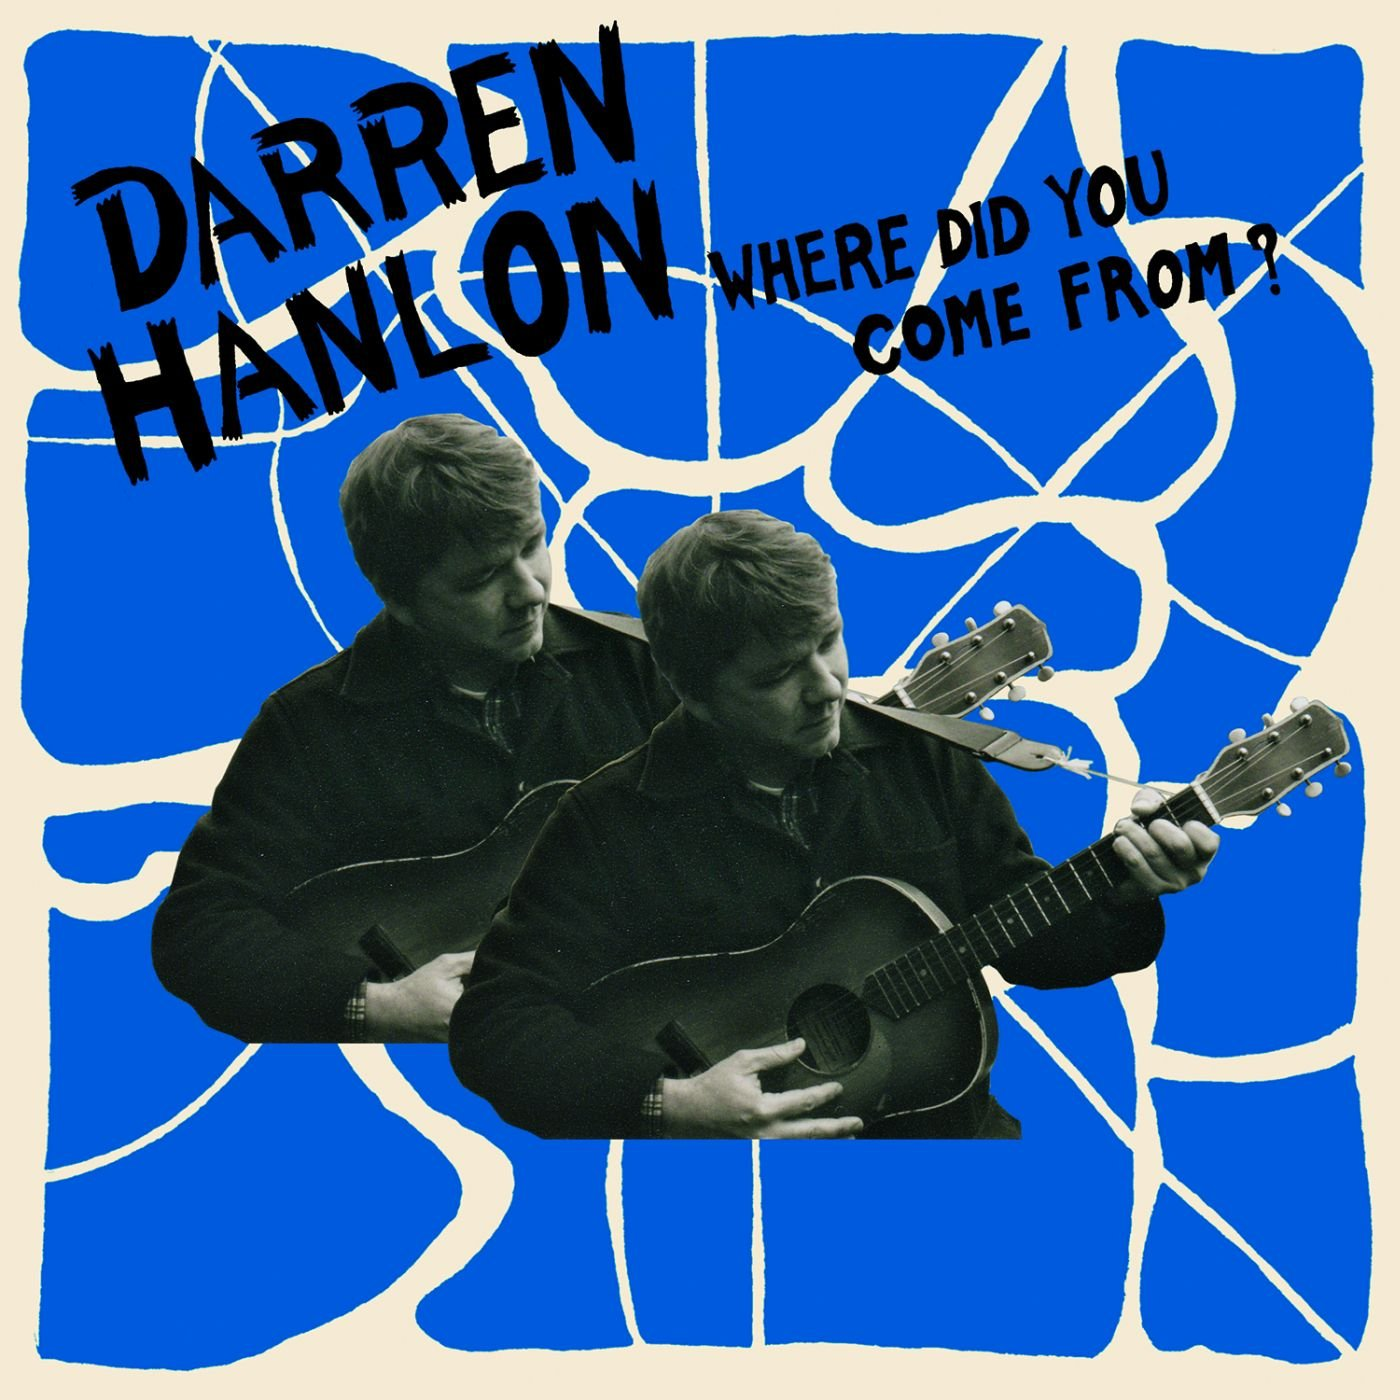 CD : Darren Hanlon - Where Did You Come From (CD)